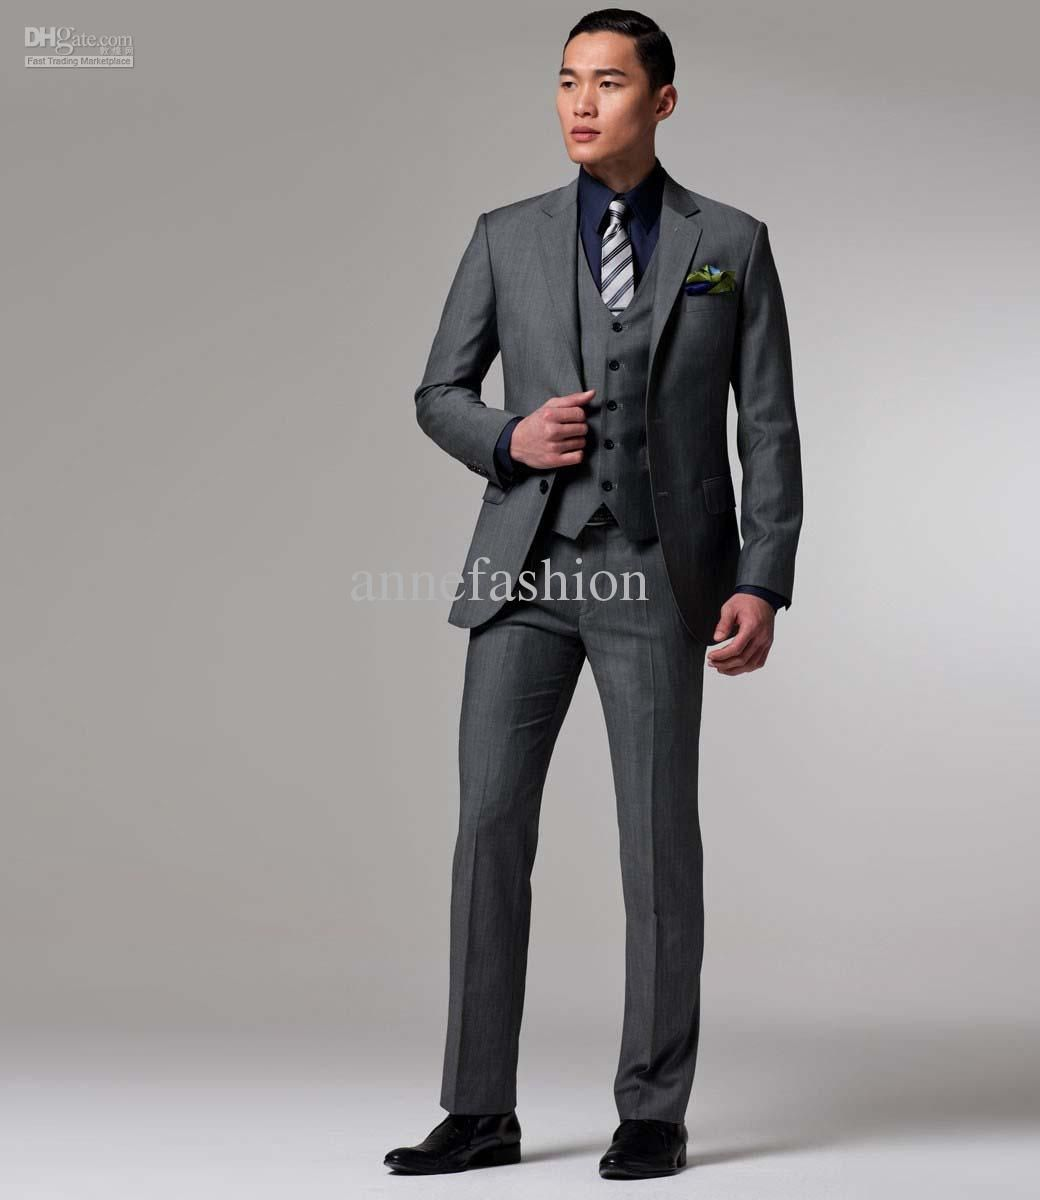 men-business-custom-made-suit-men-middle.jpg (1040×1200) | men's ...